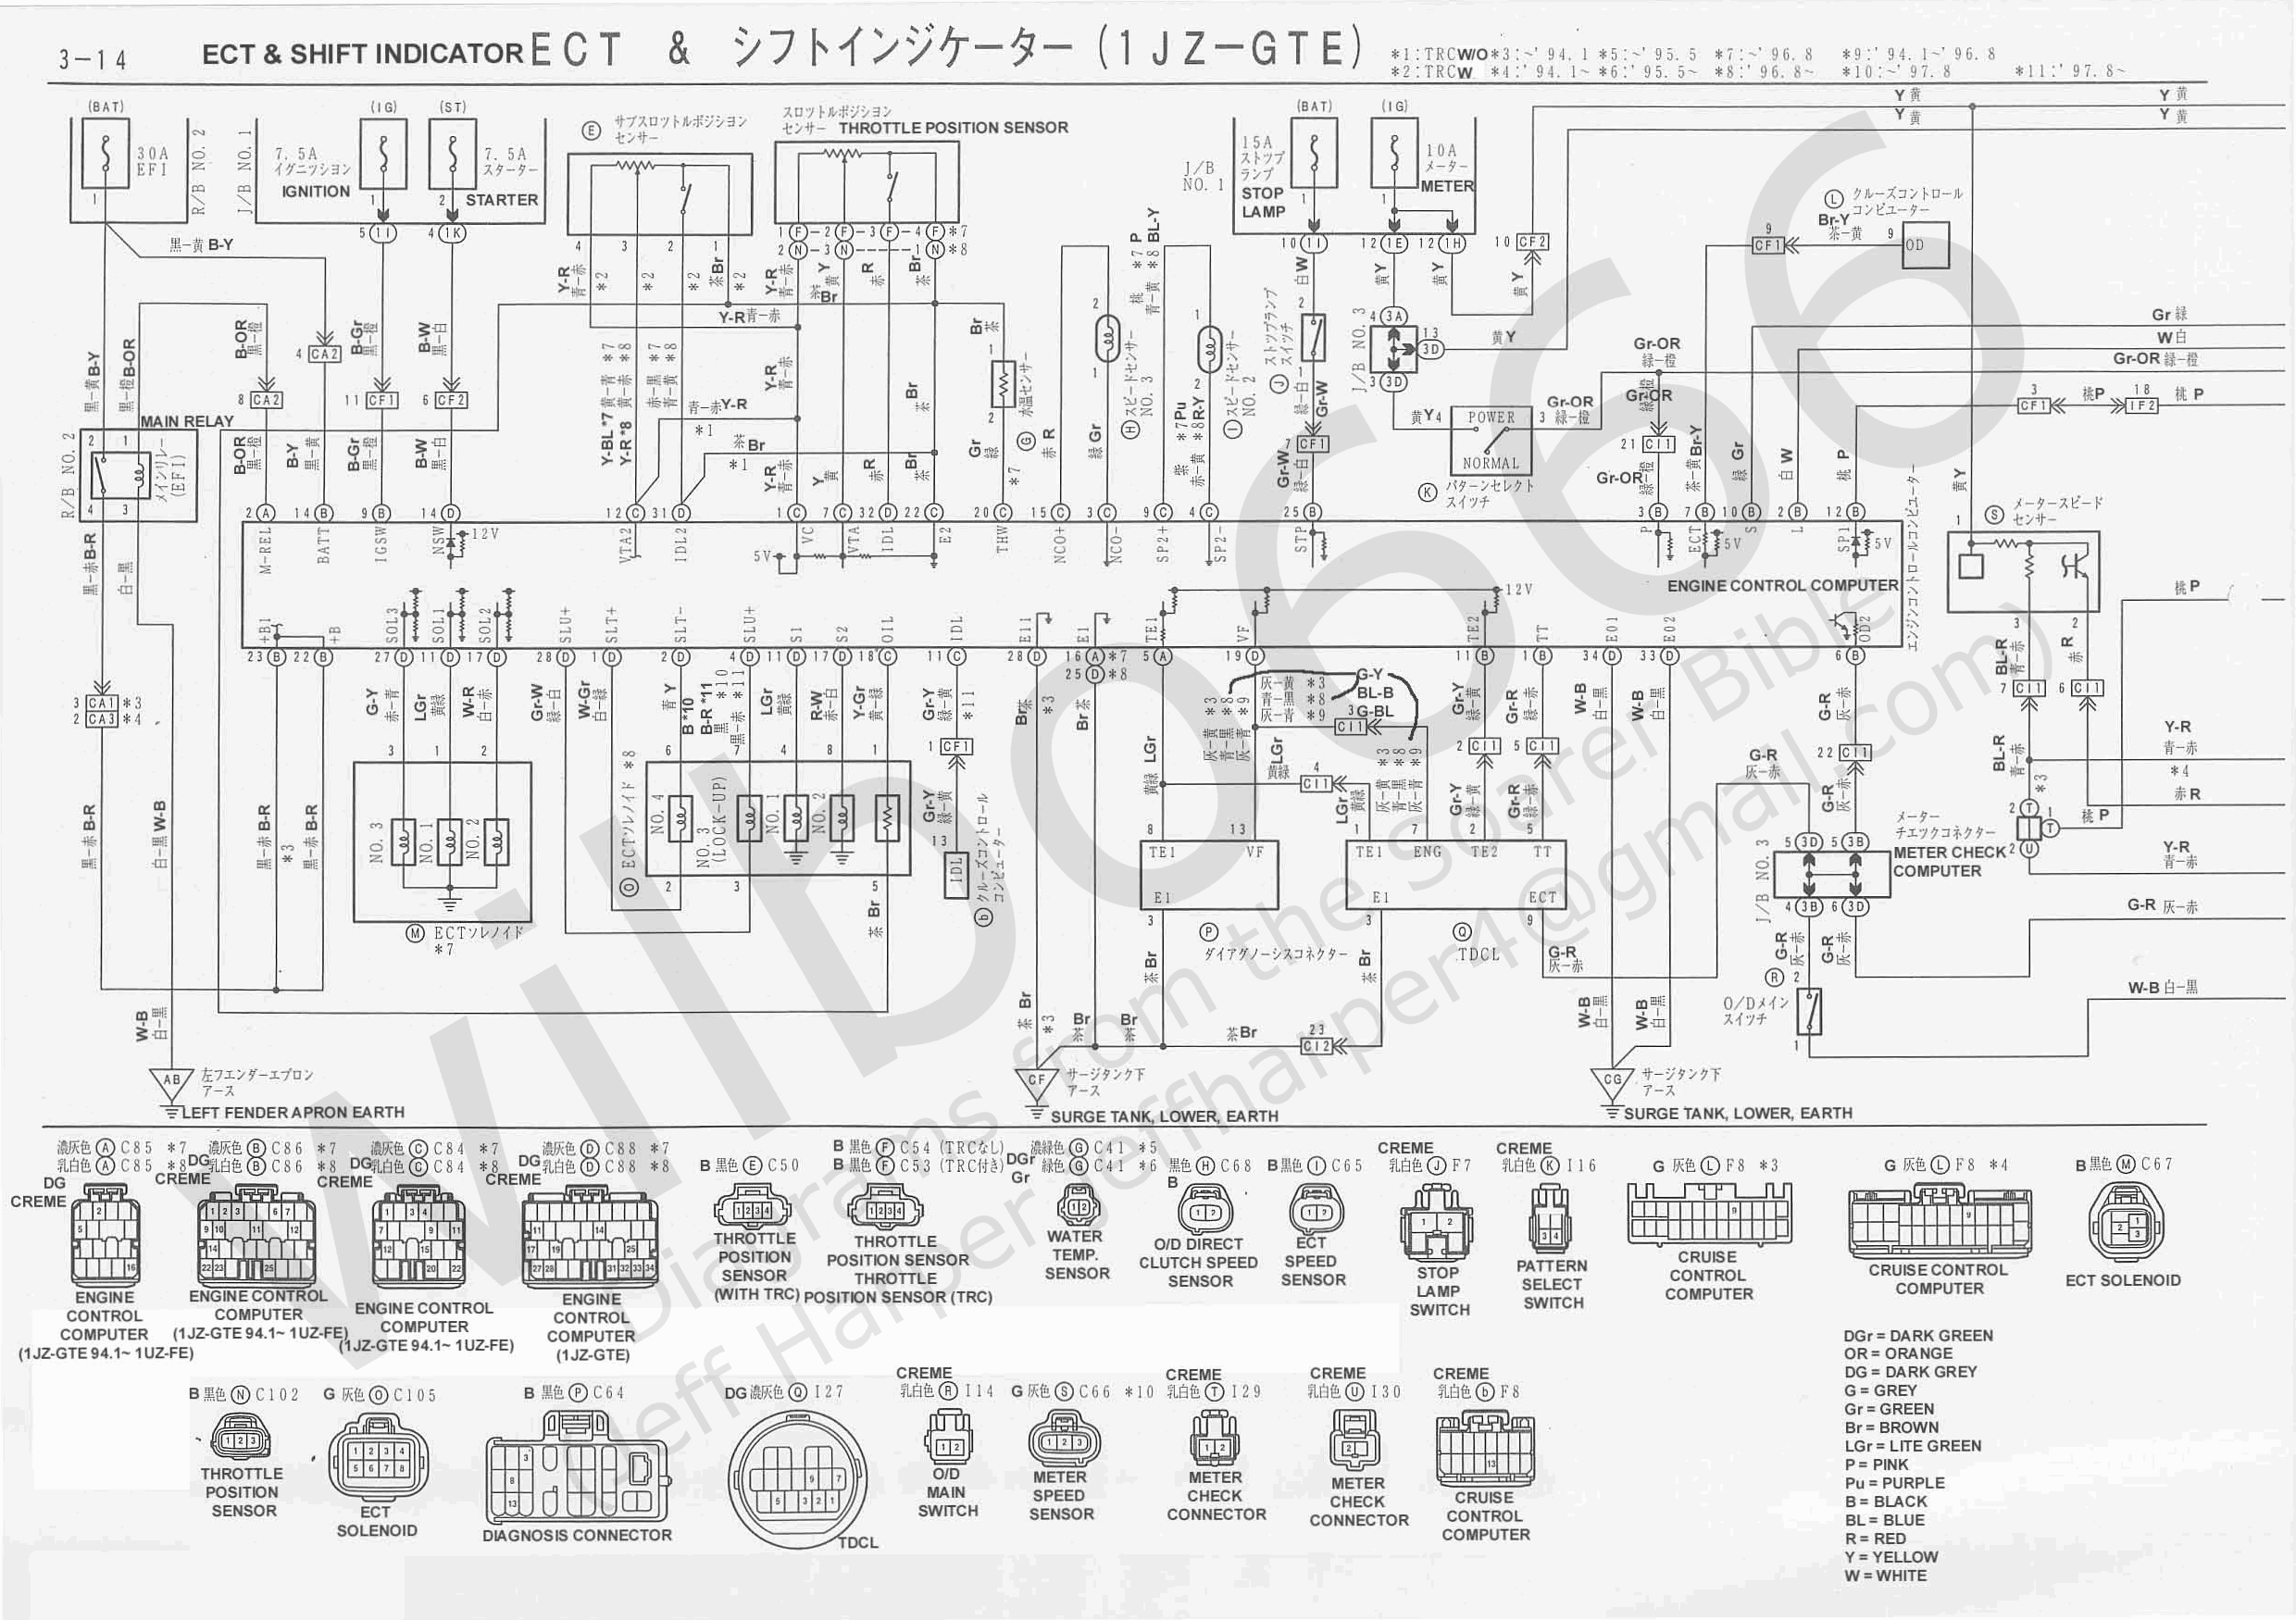 xZZ3x Electrical Wiring Diagram 6737105 3 14?resize\\\\\\\=665%2C469 8 inch bazooka tube wiring diagram bazooka installation diagram bazooka bta850fh wiring diagram at suagrazia.org